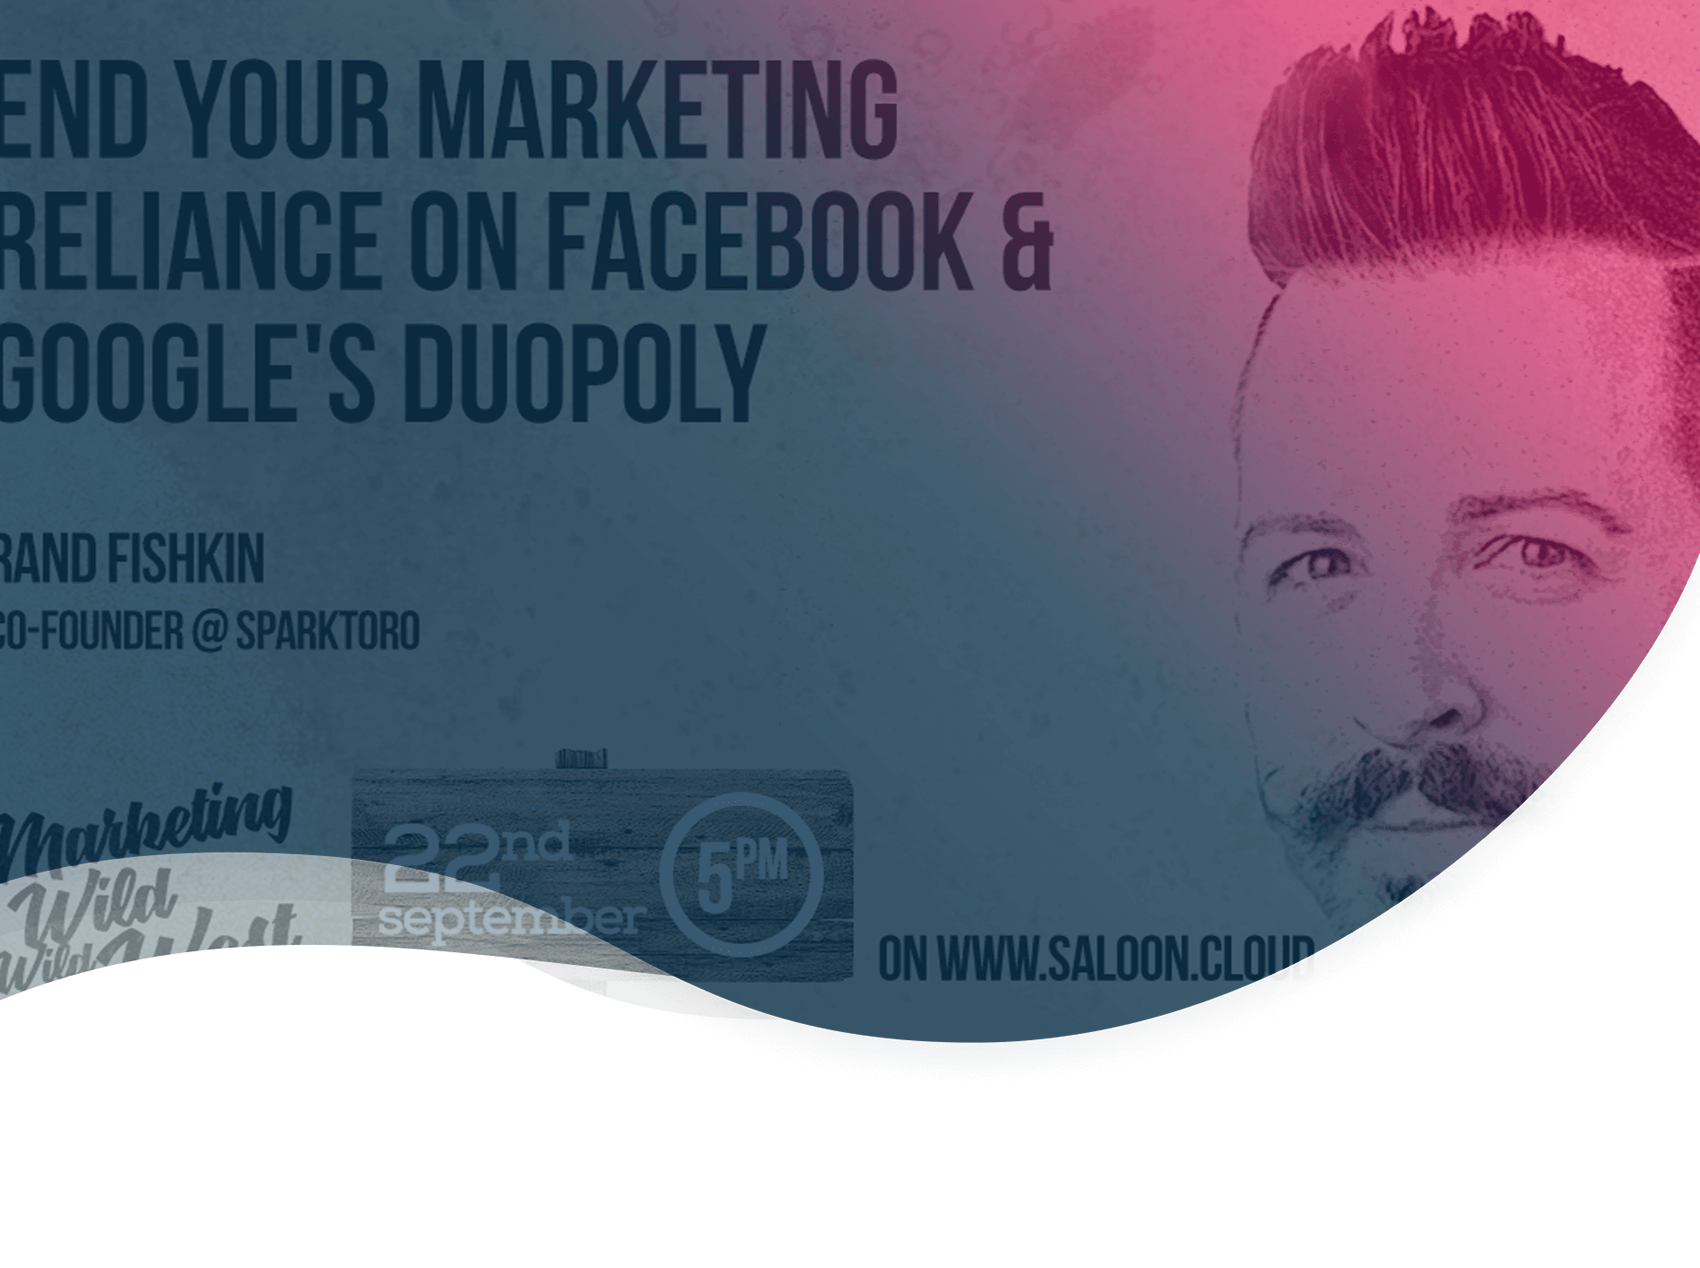 Rand Fishkin's advice on how to end your marketing reliance on Facebook & Google's duopoly